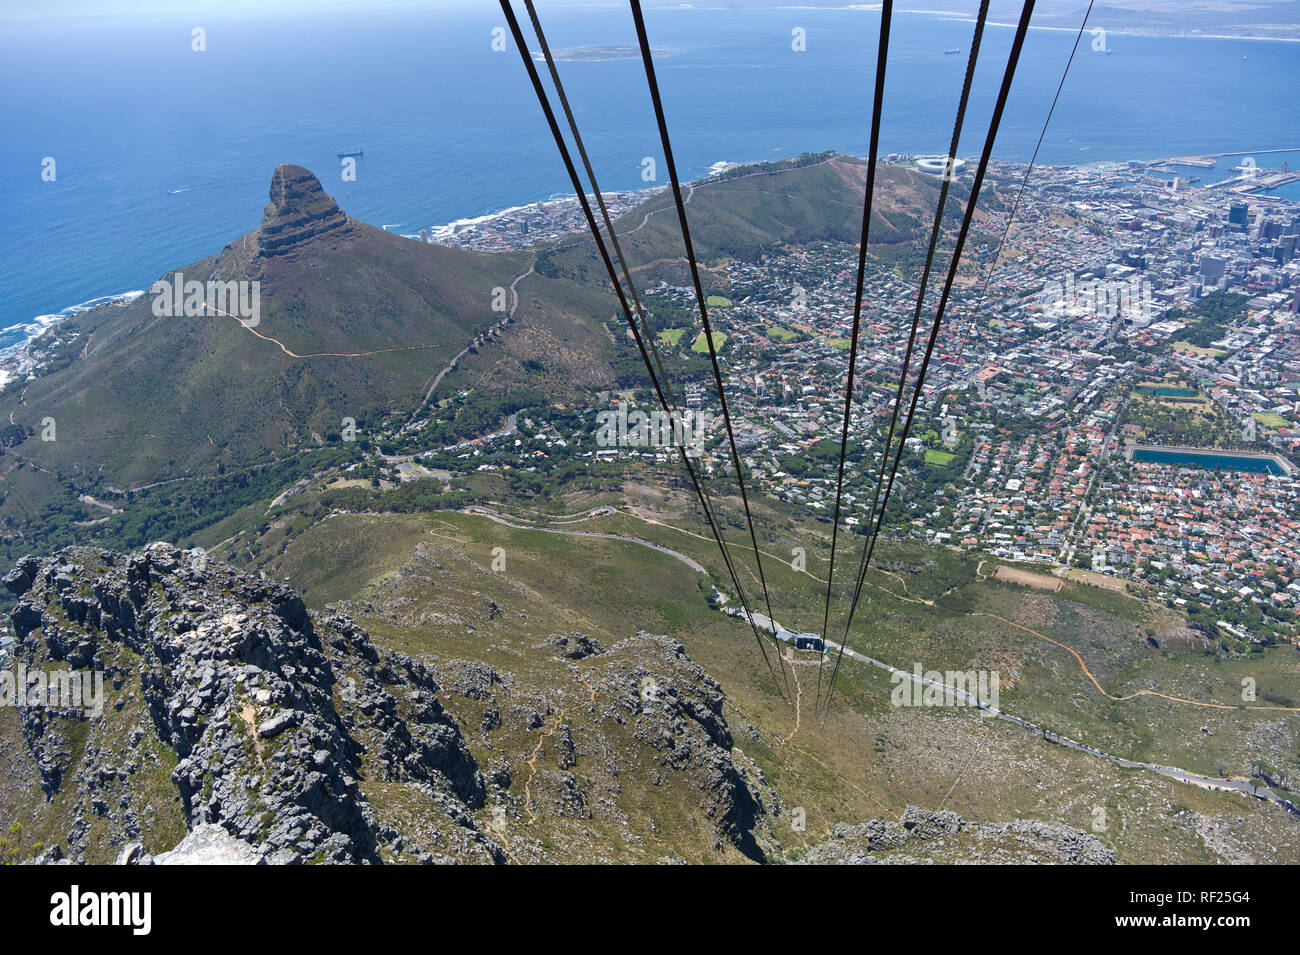 The Table Mountain cable car is one way to get to the top of the mountain that affords stunning views of the city and the hiking routes below. - Stock Image